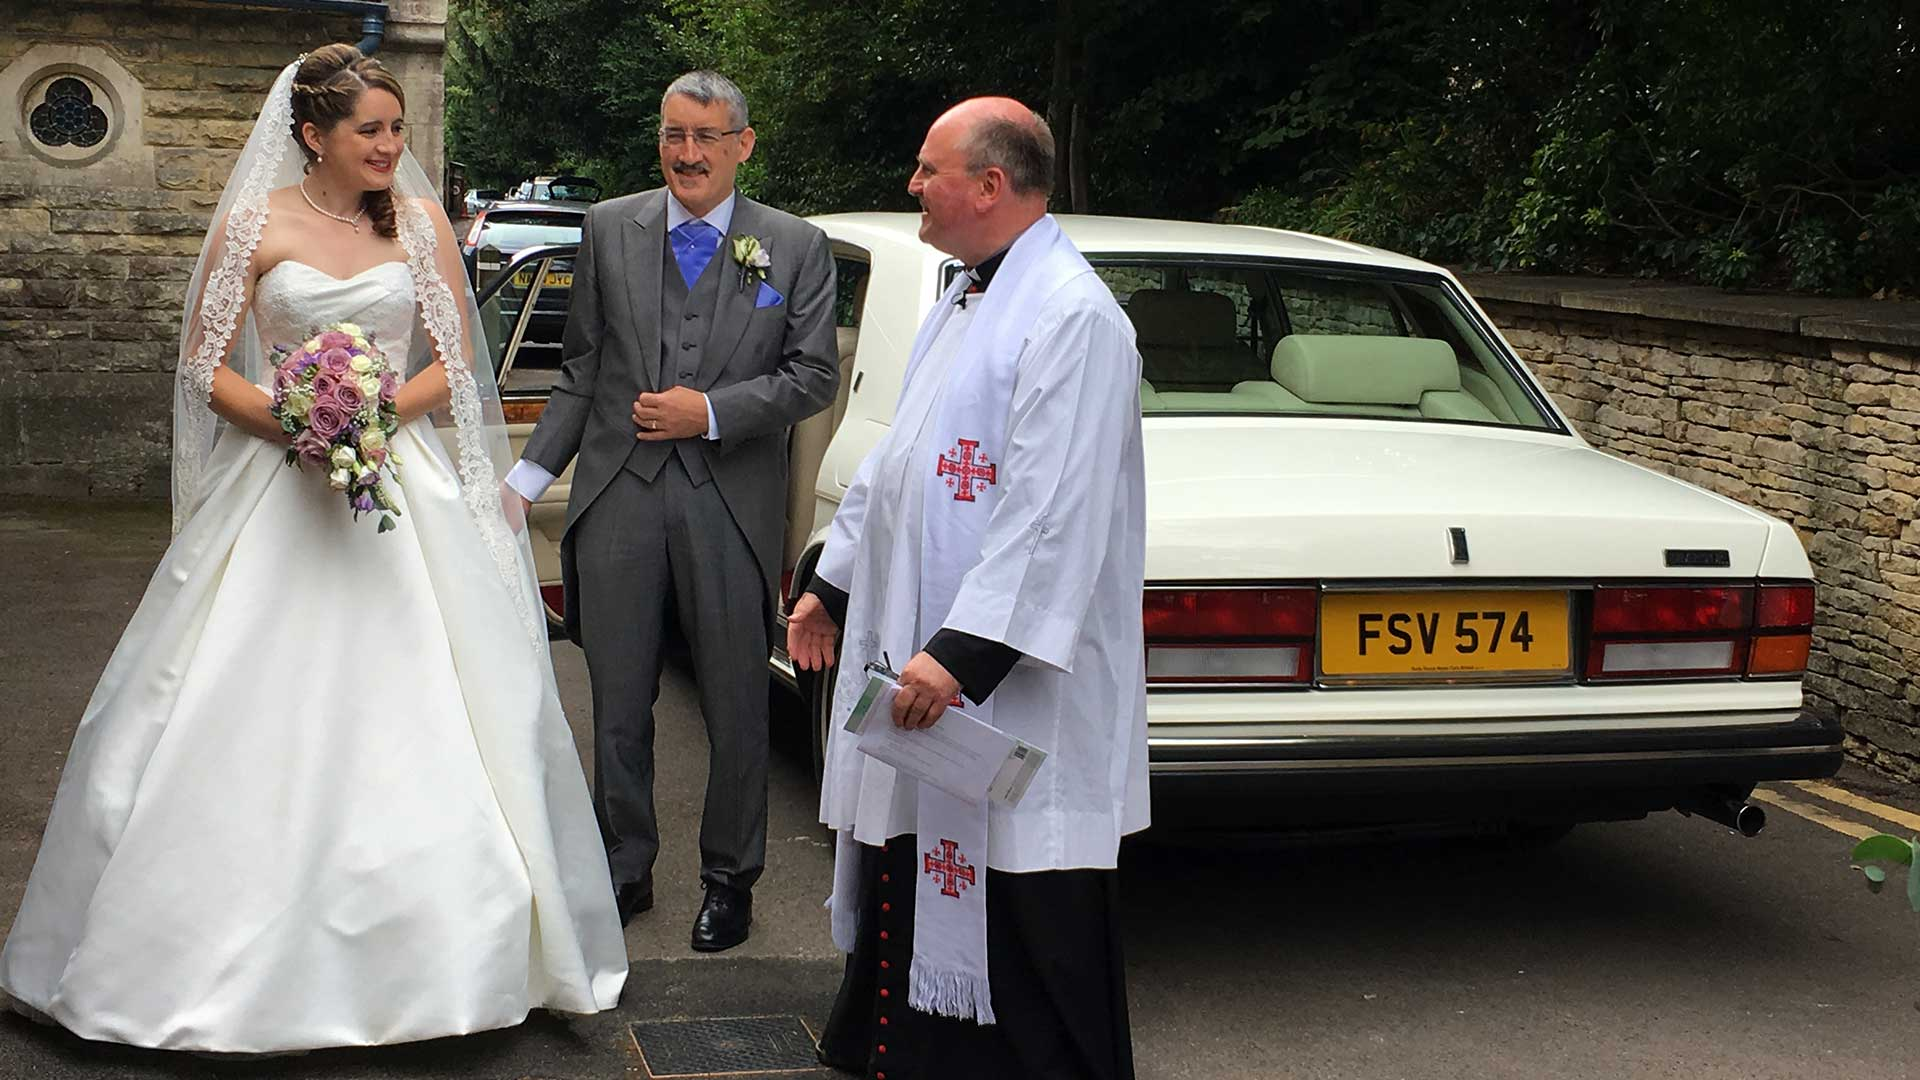 Nadia at the Church with the vicar and her father